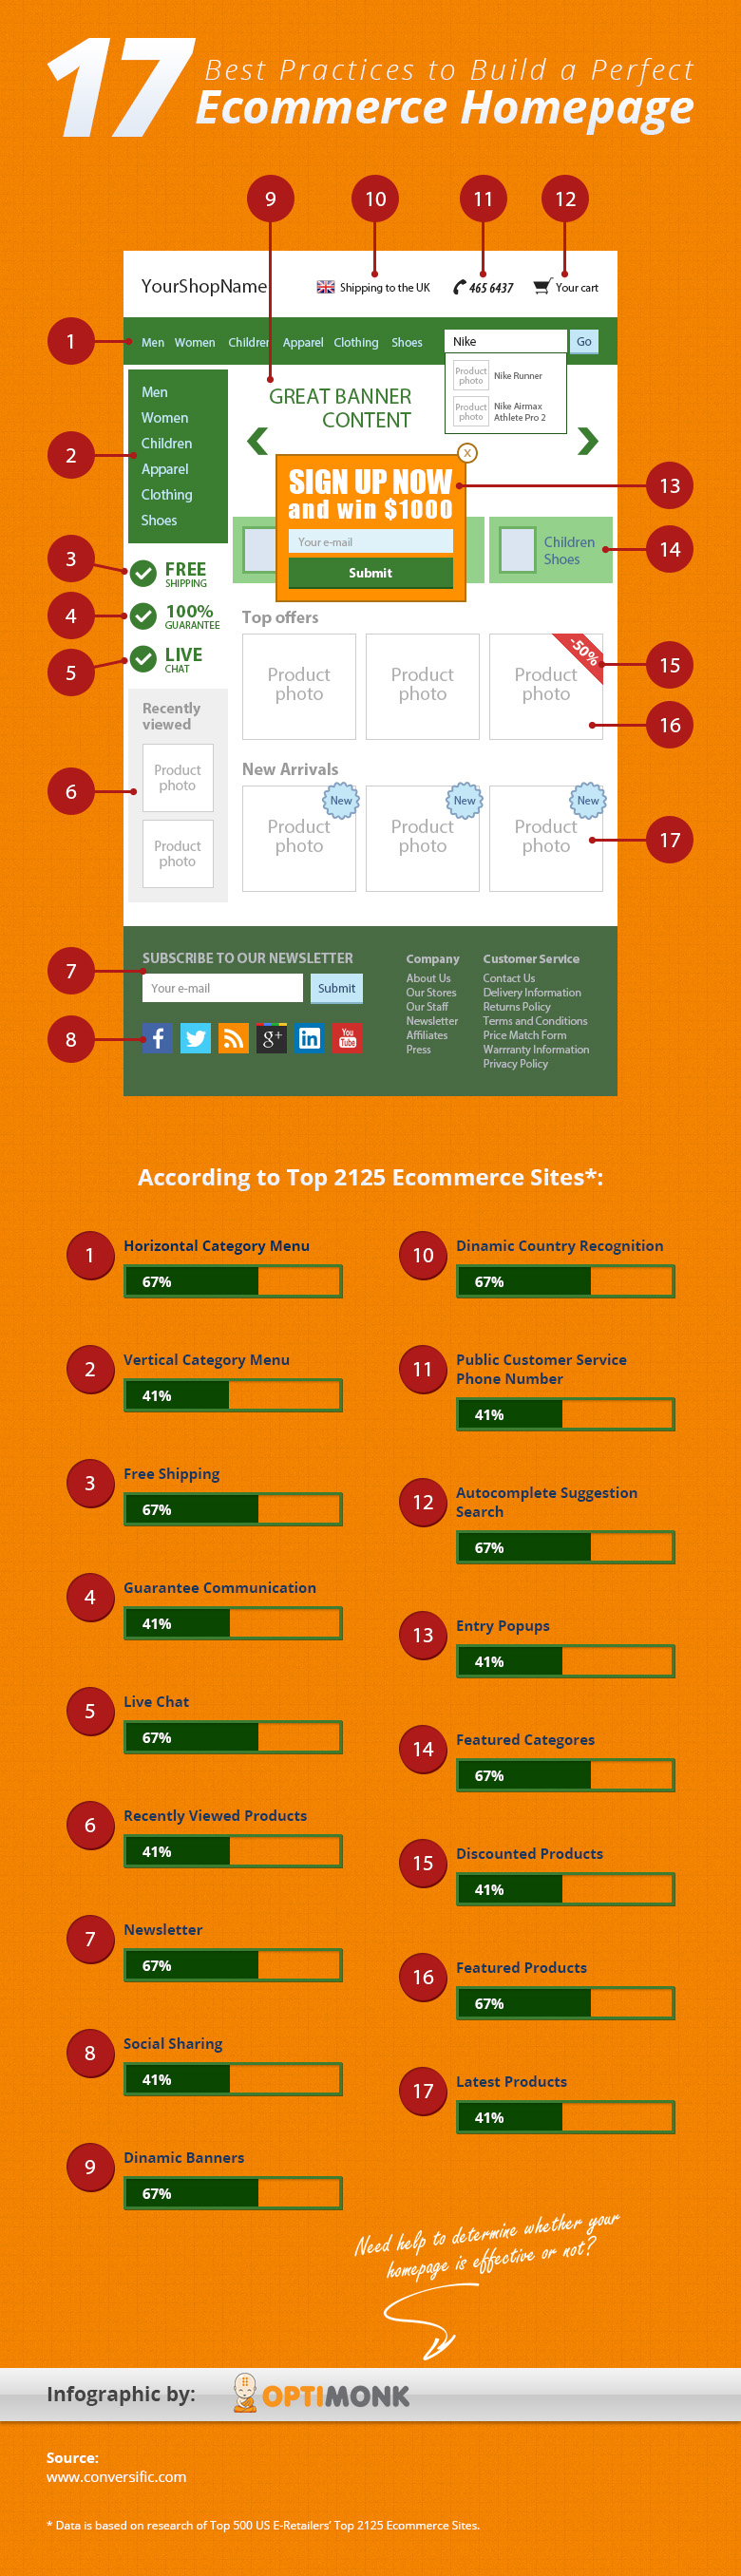 High Quality Ecommerce Homepage Design